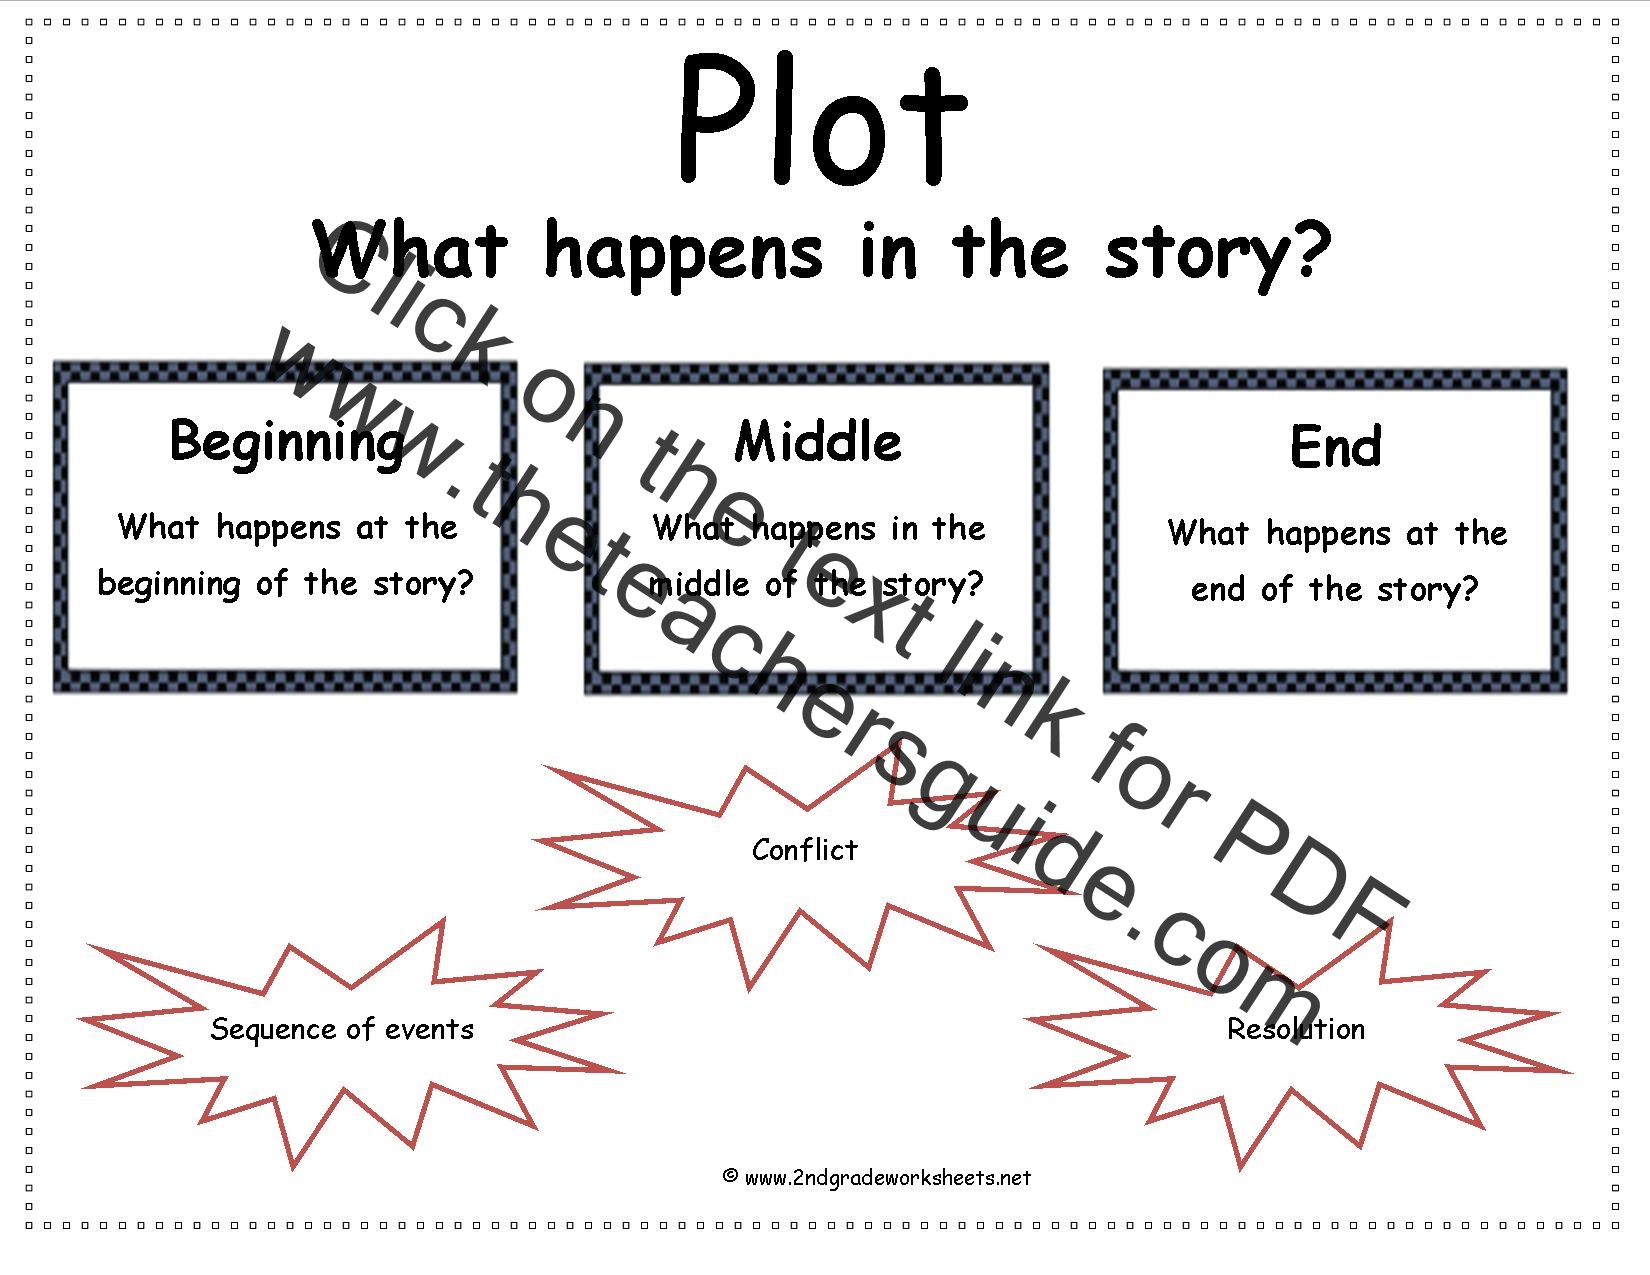 worksheet Literary Elements Worksheet literary elements worksheet abitlikethis narrative worksheets 4th grade displaying 14gt images for plot literature